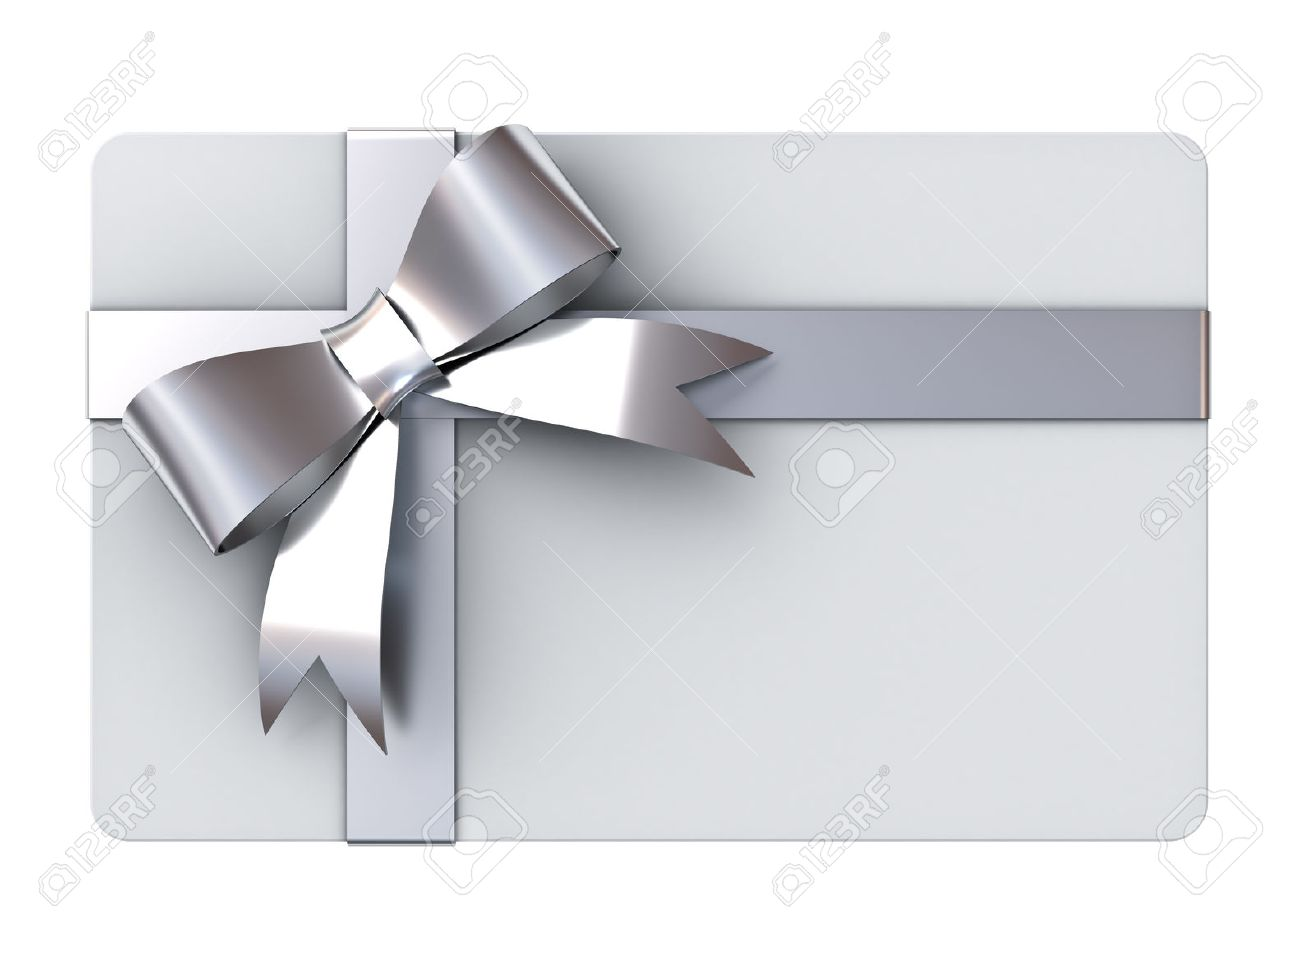 Blank gift card with silver ribbons and bow isolated on white blank gift card with silver ribbons and bow isolated on white background stock photo 49132357 negle Gallery